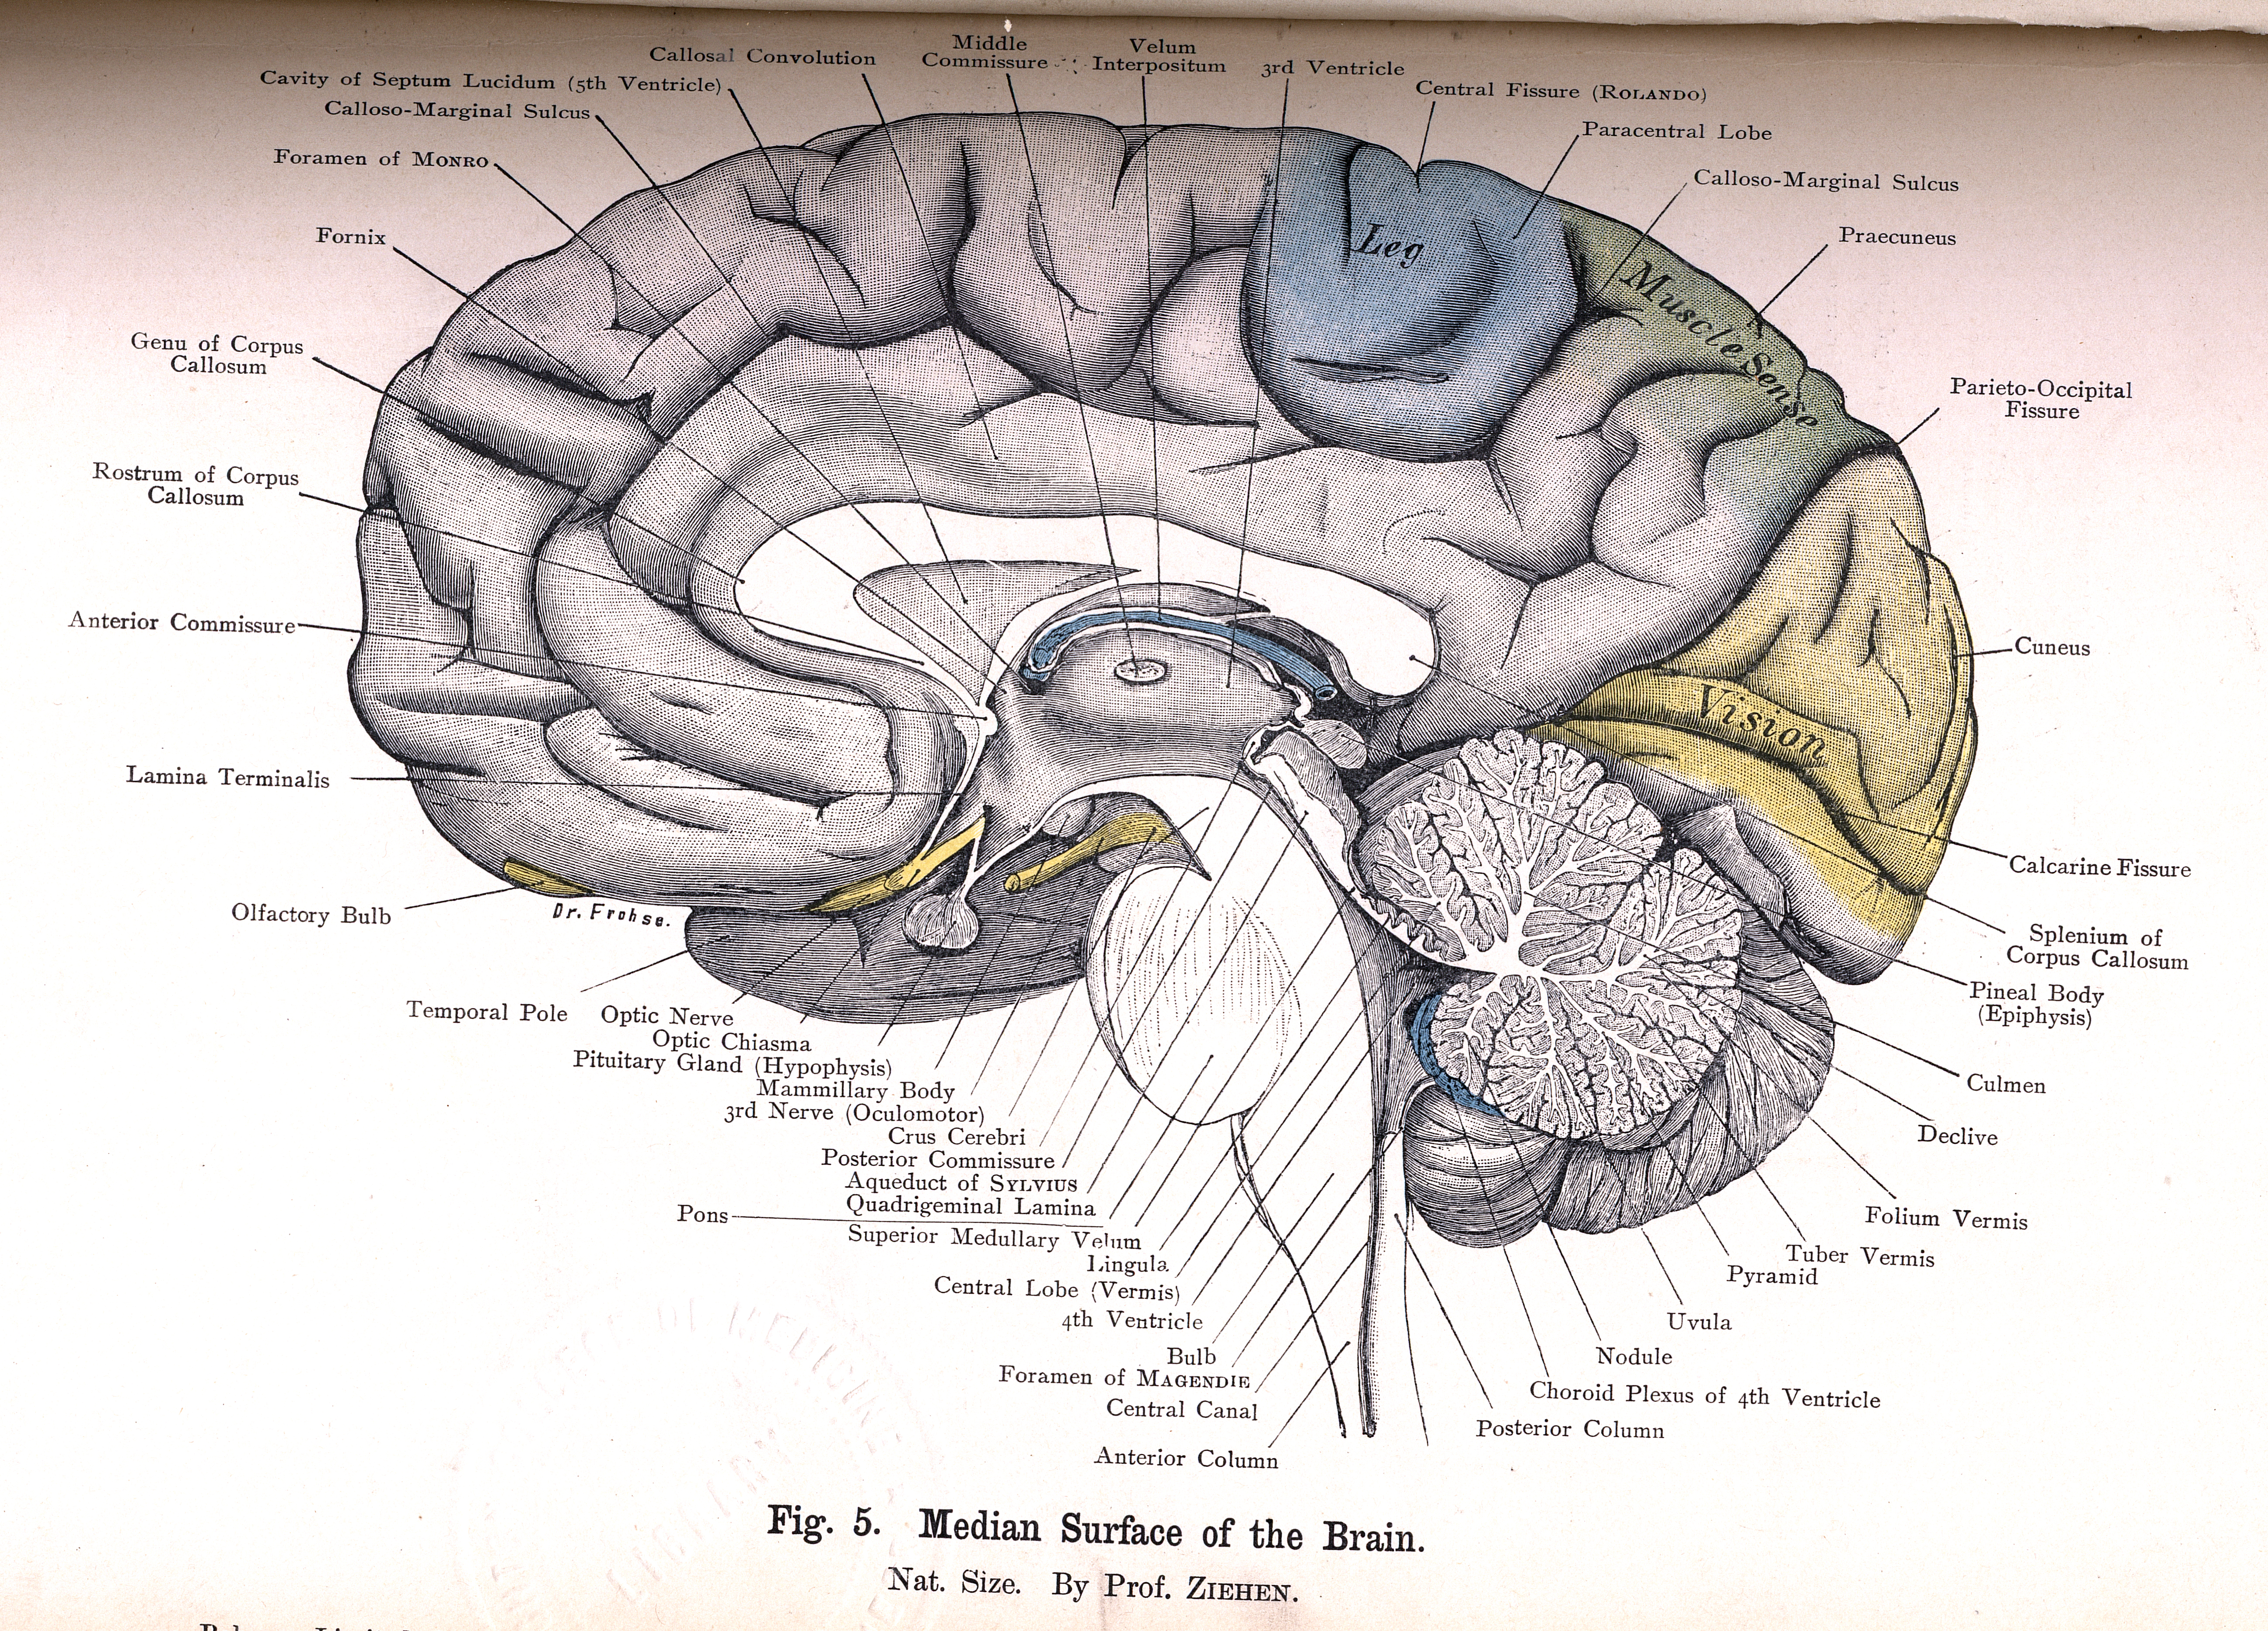 5. Median Surface of the Brain